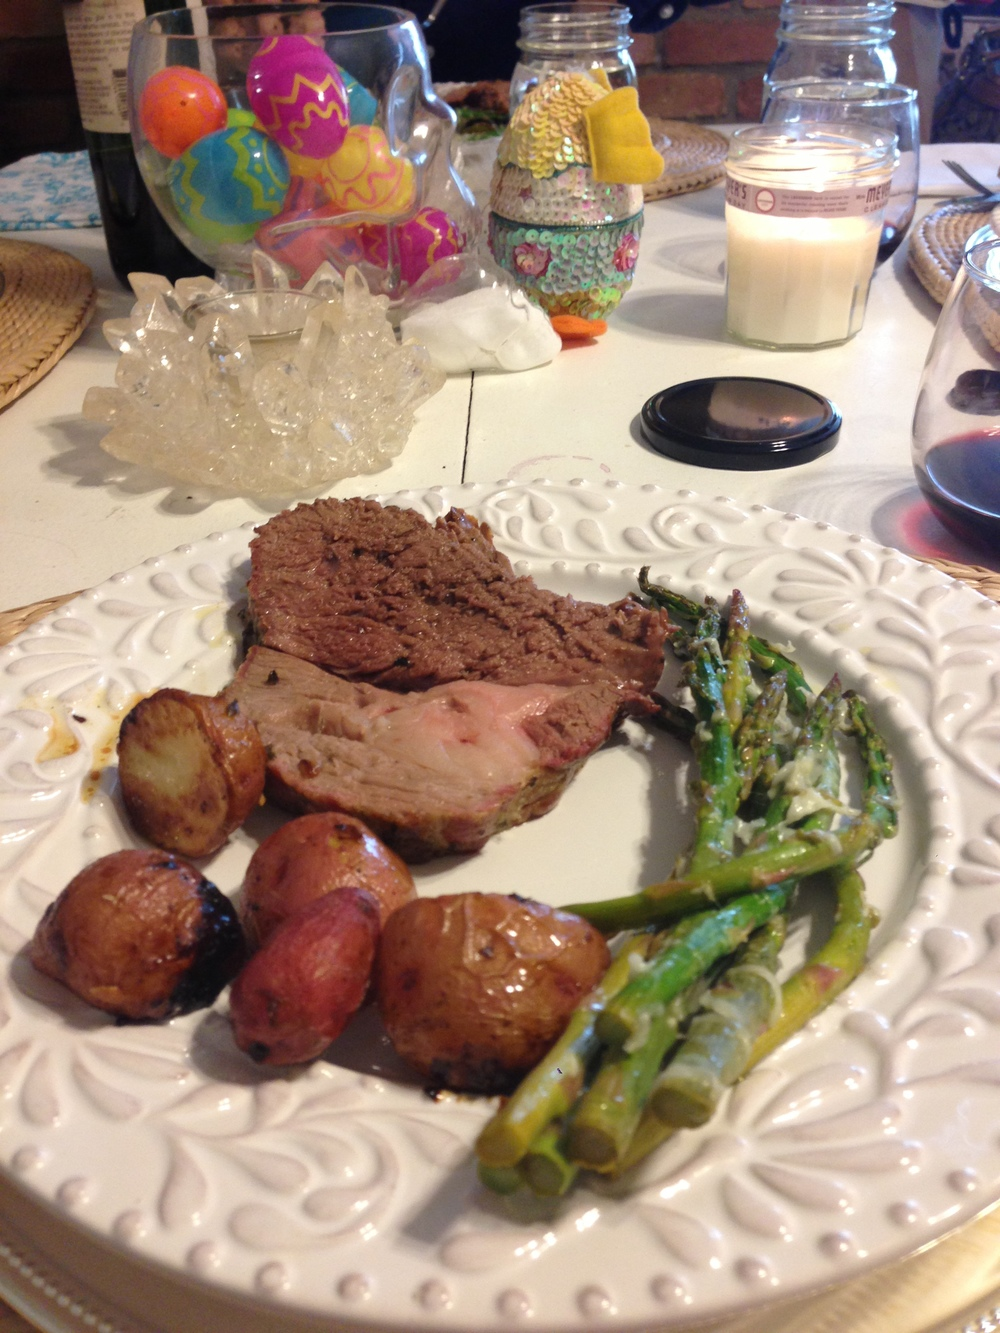 Leg O' Lamb with roasted taters and the asparagus. We started with an arugula salad with dried Montalcino Cherries and chopped almonds.